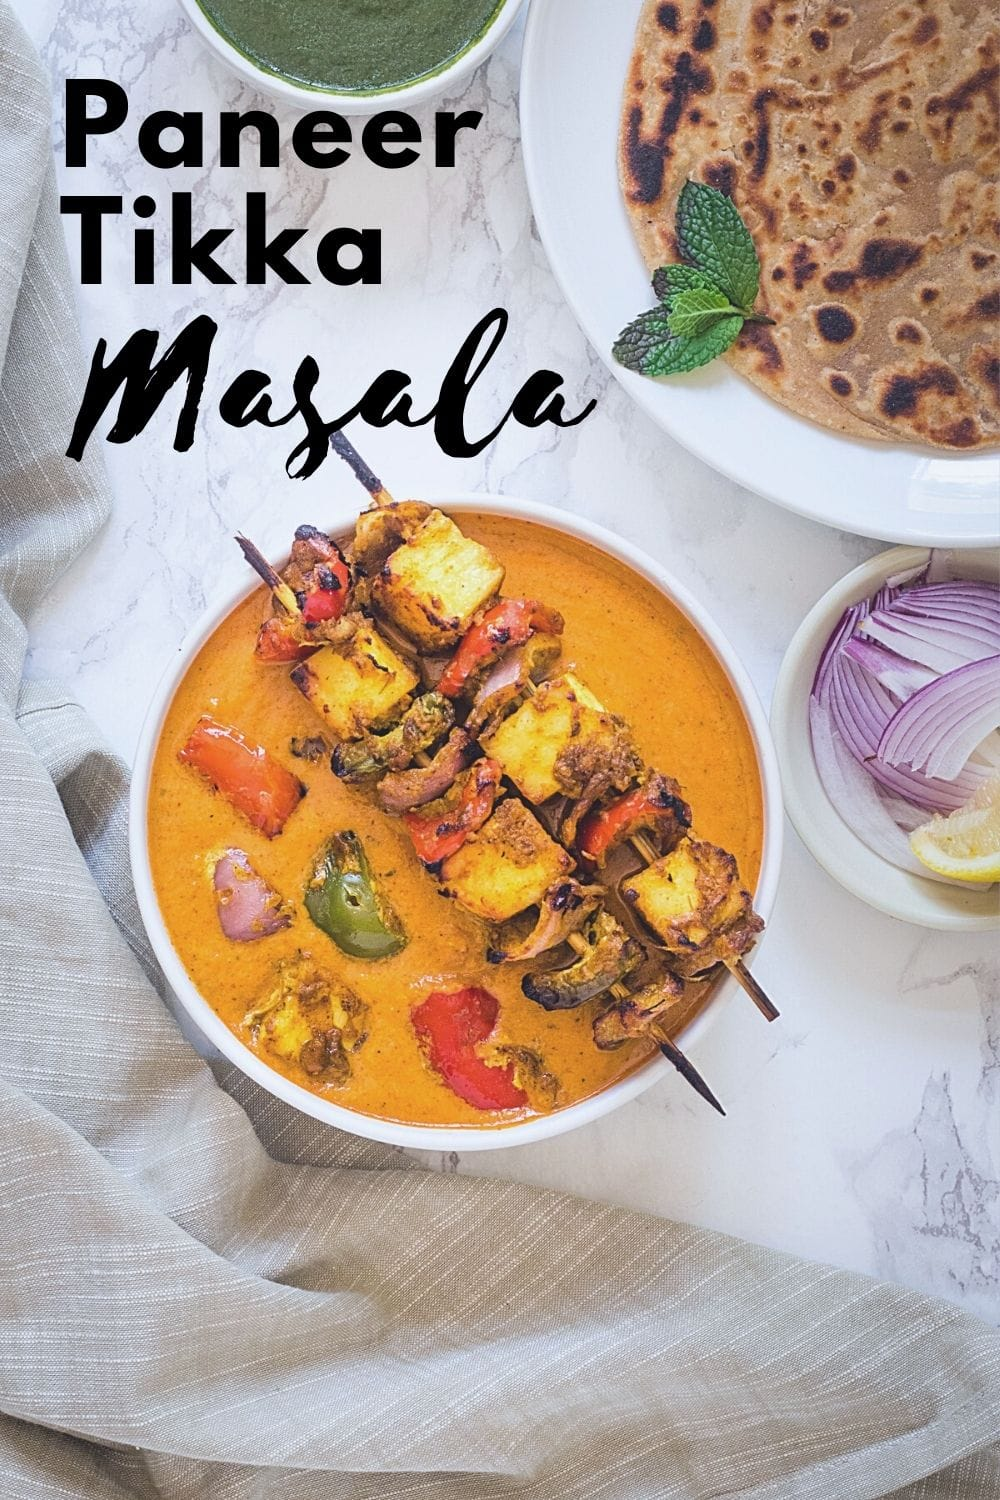 paneer tikka masala in a bowl with text on the image for pinterest